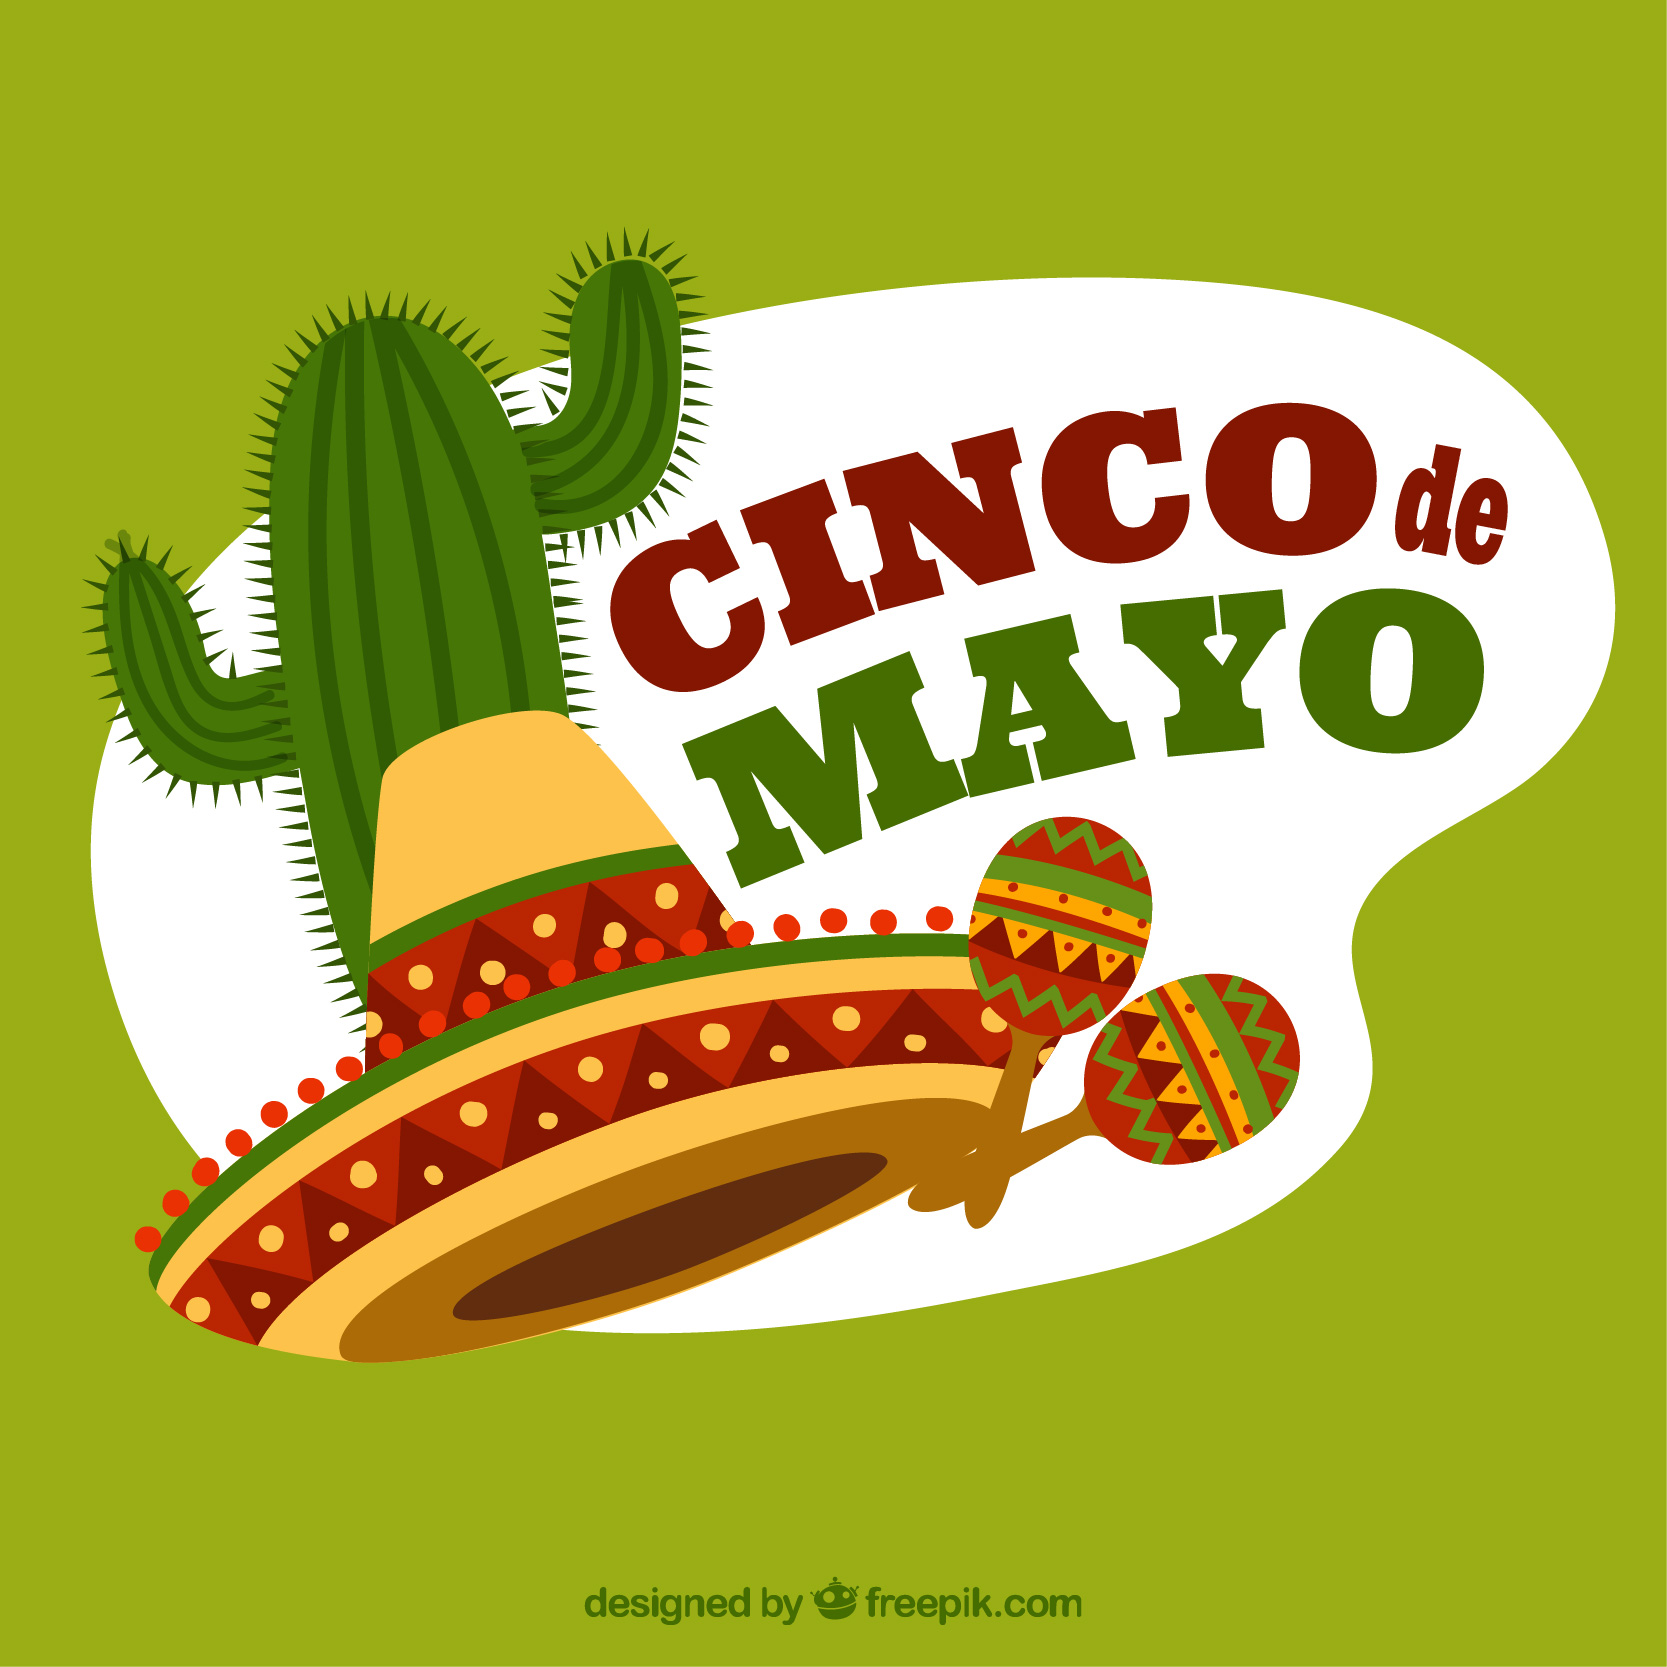 Let's See How Was 5 De Mayo For Our Coolest Influencers!